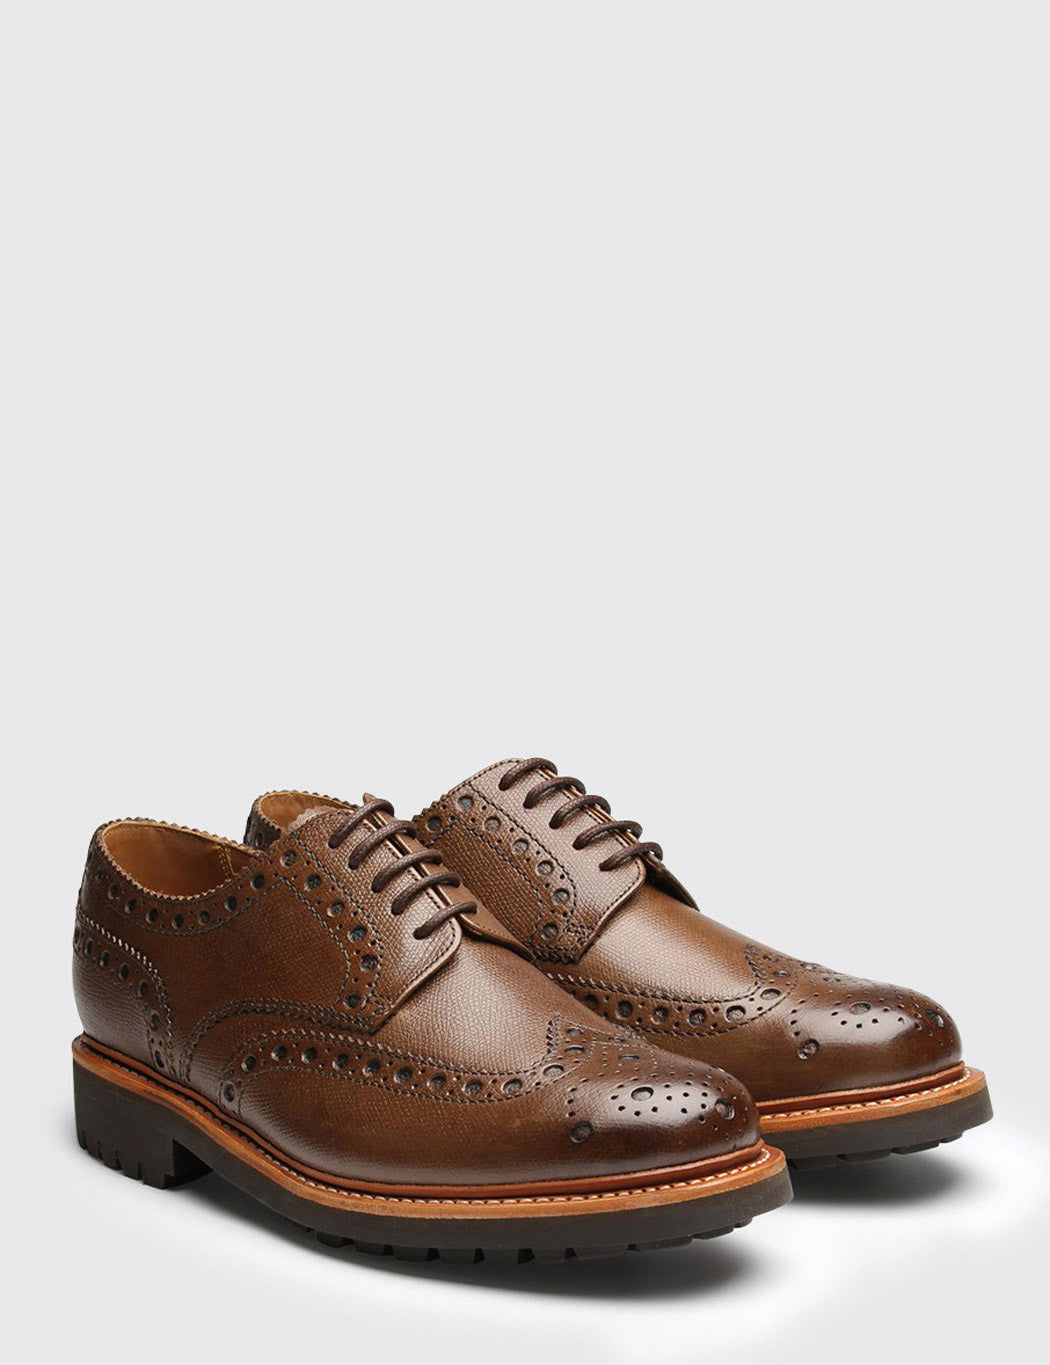 Grenson Archie Commando Sole Brogue Shoes - Brown